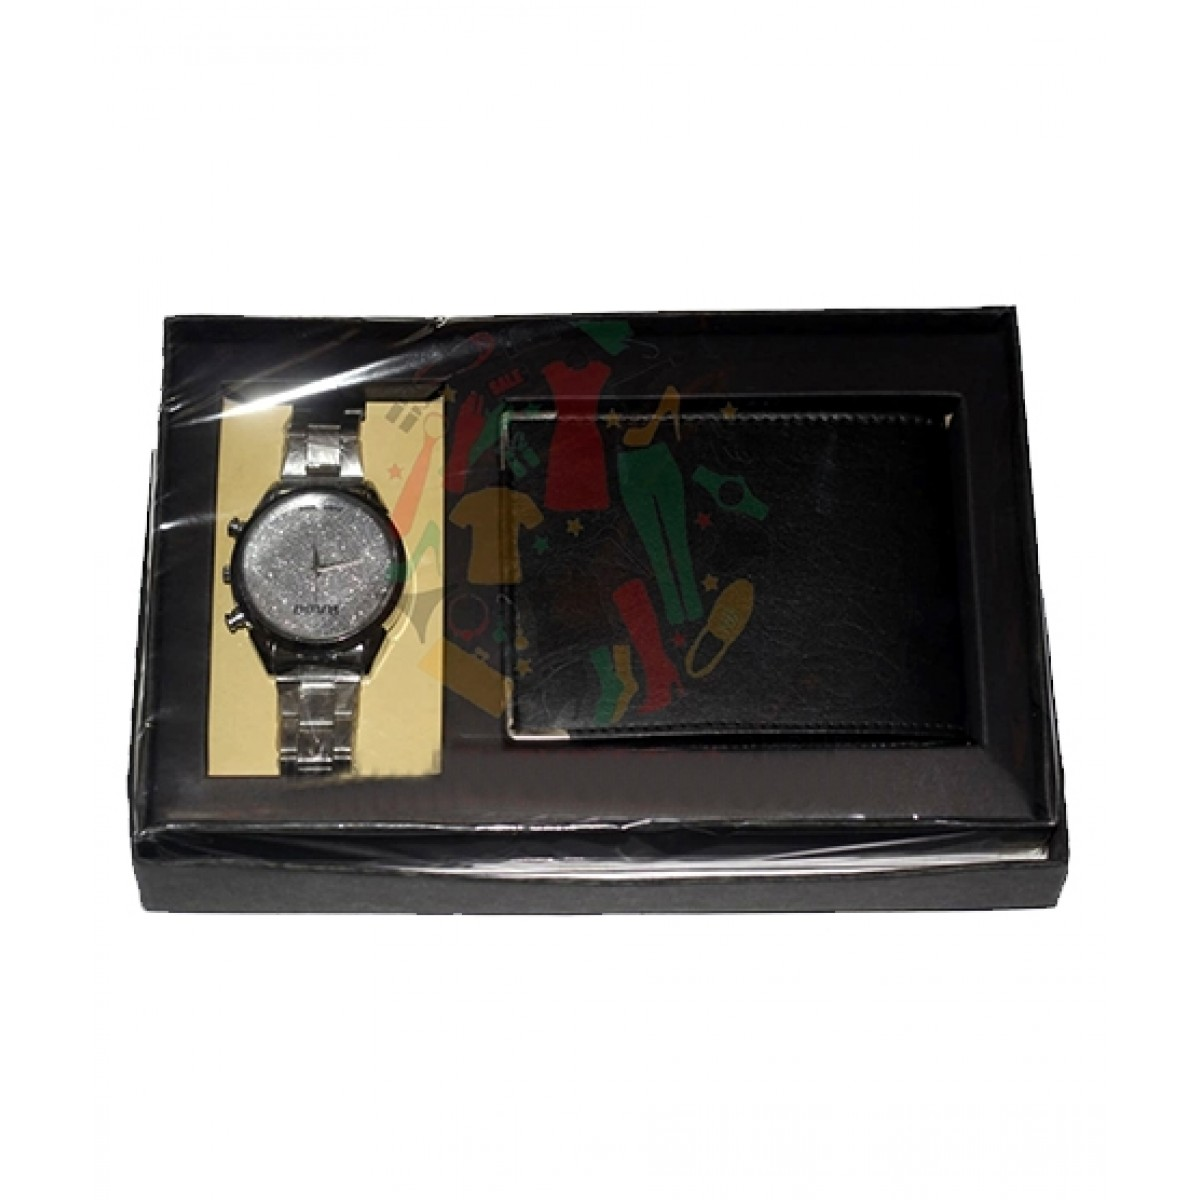 Wallet Watch Gift Set 0018 Price In Pakistan Buy Khareed Express Wallet Watch Gift Set Ishopping Pk